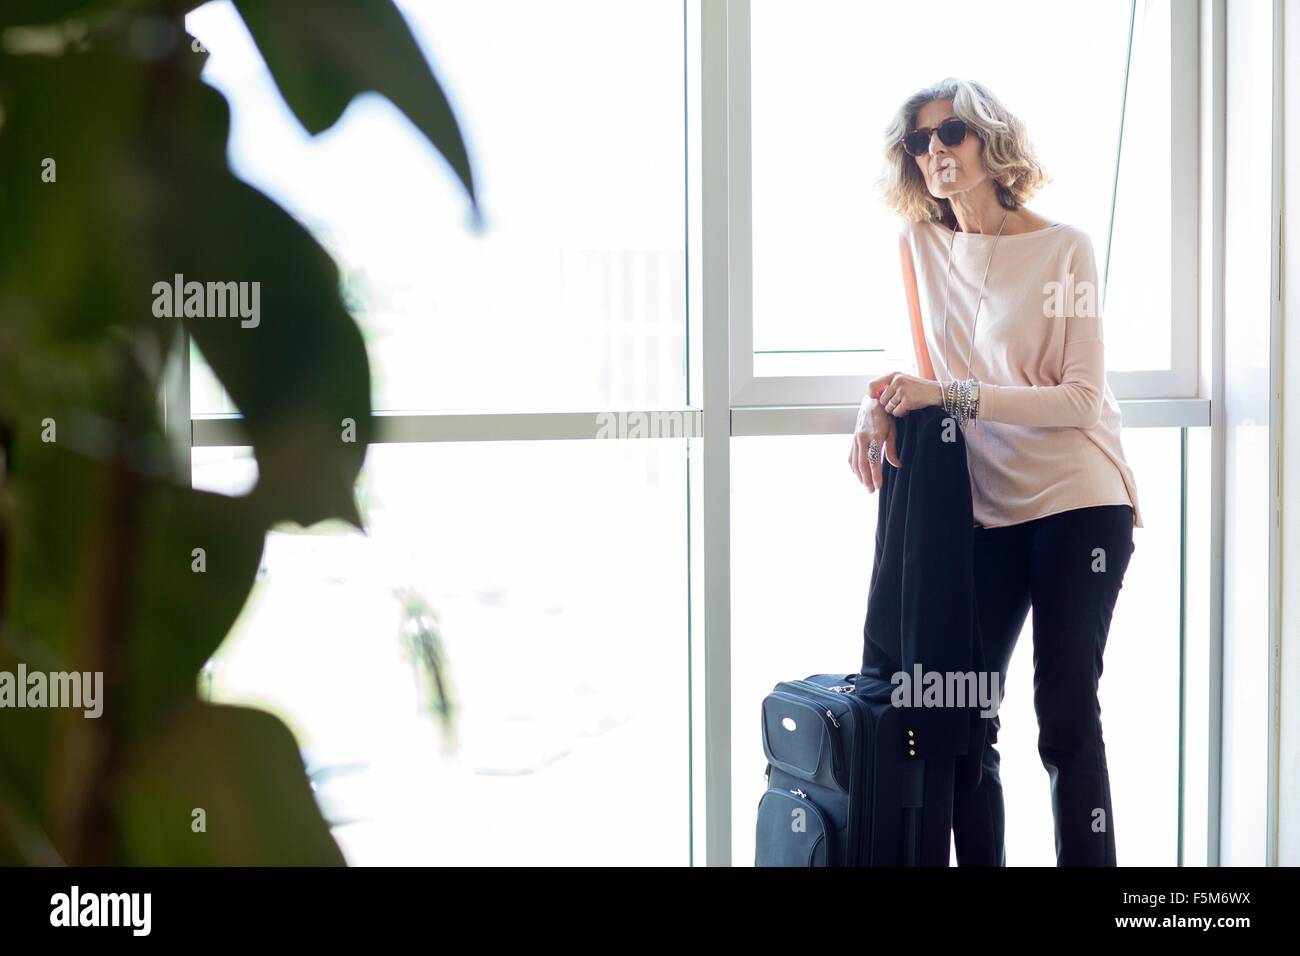 Senior businesswoman waiting with wheeled suitcase in office building - Stock Image